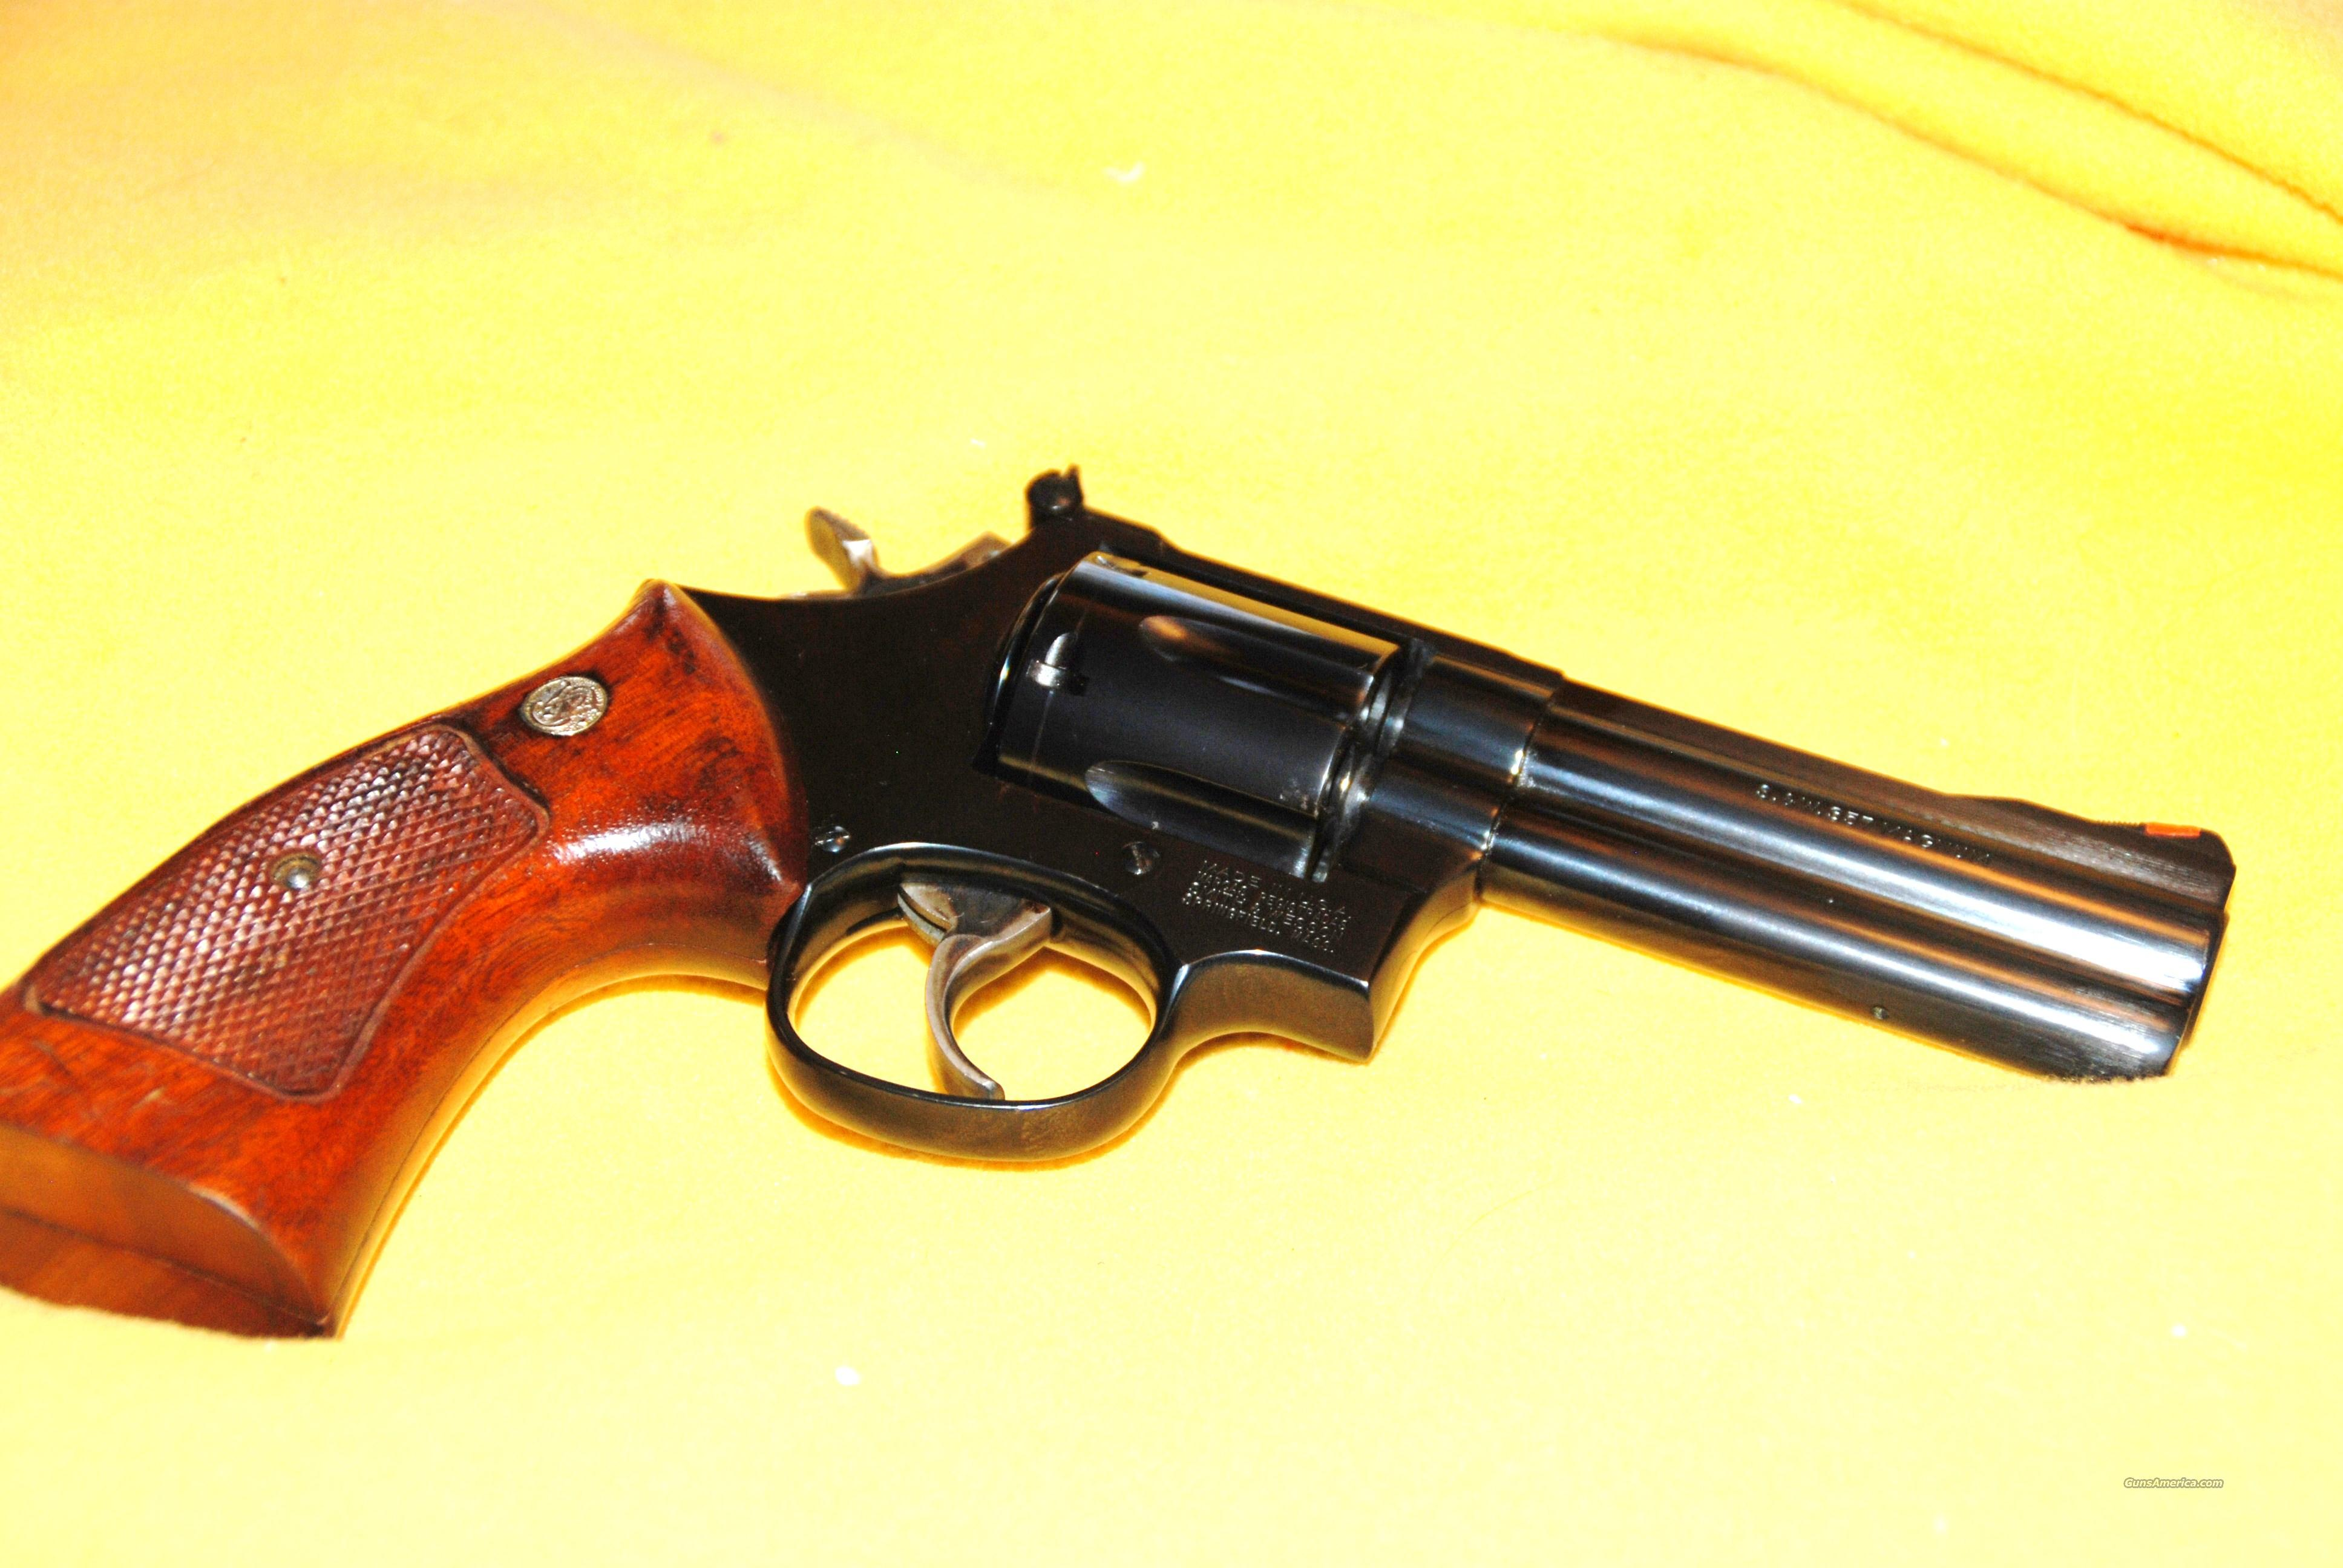 Smith & Wesson Model 586-3 357Magnum, Mint Condition, No. BHY5369  Guns > Pistols > Smith & Wesson Revolvers > Full Frame Revolver